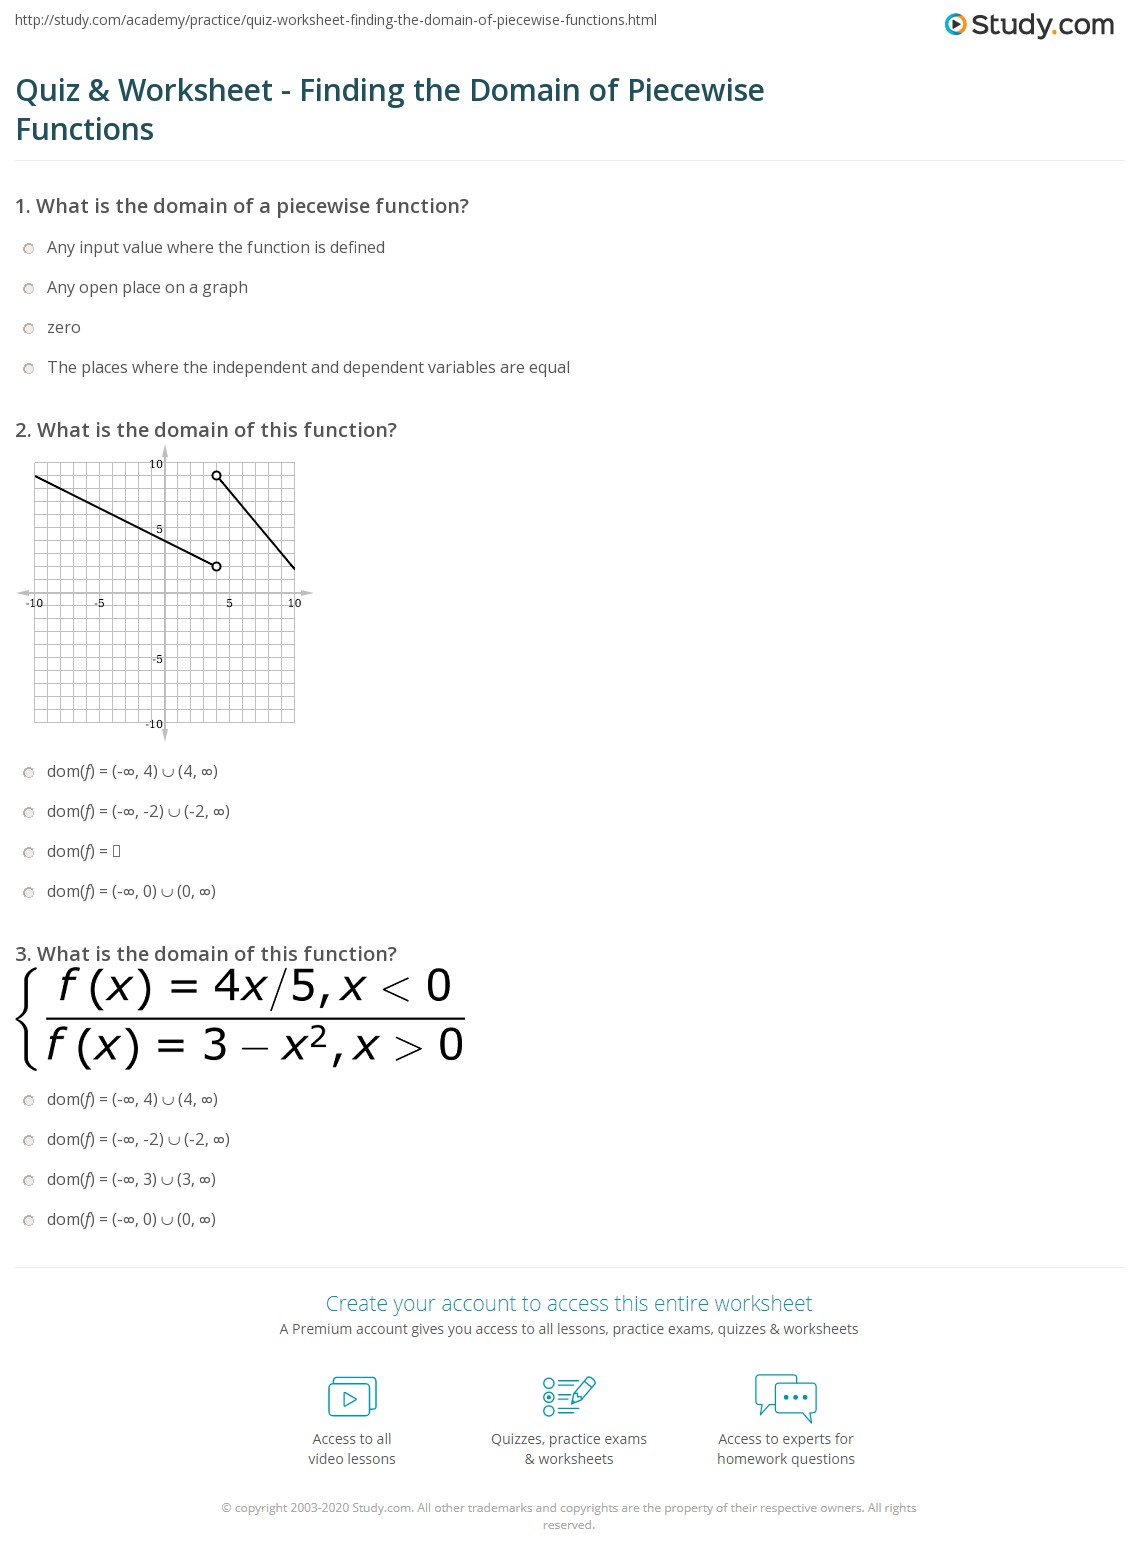 Piecewise Functions Worksheet Answers